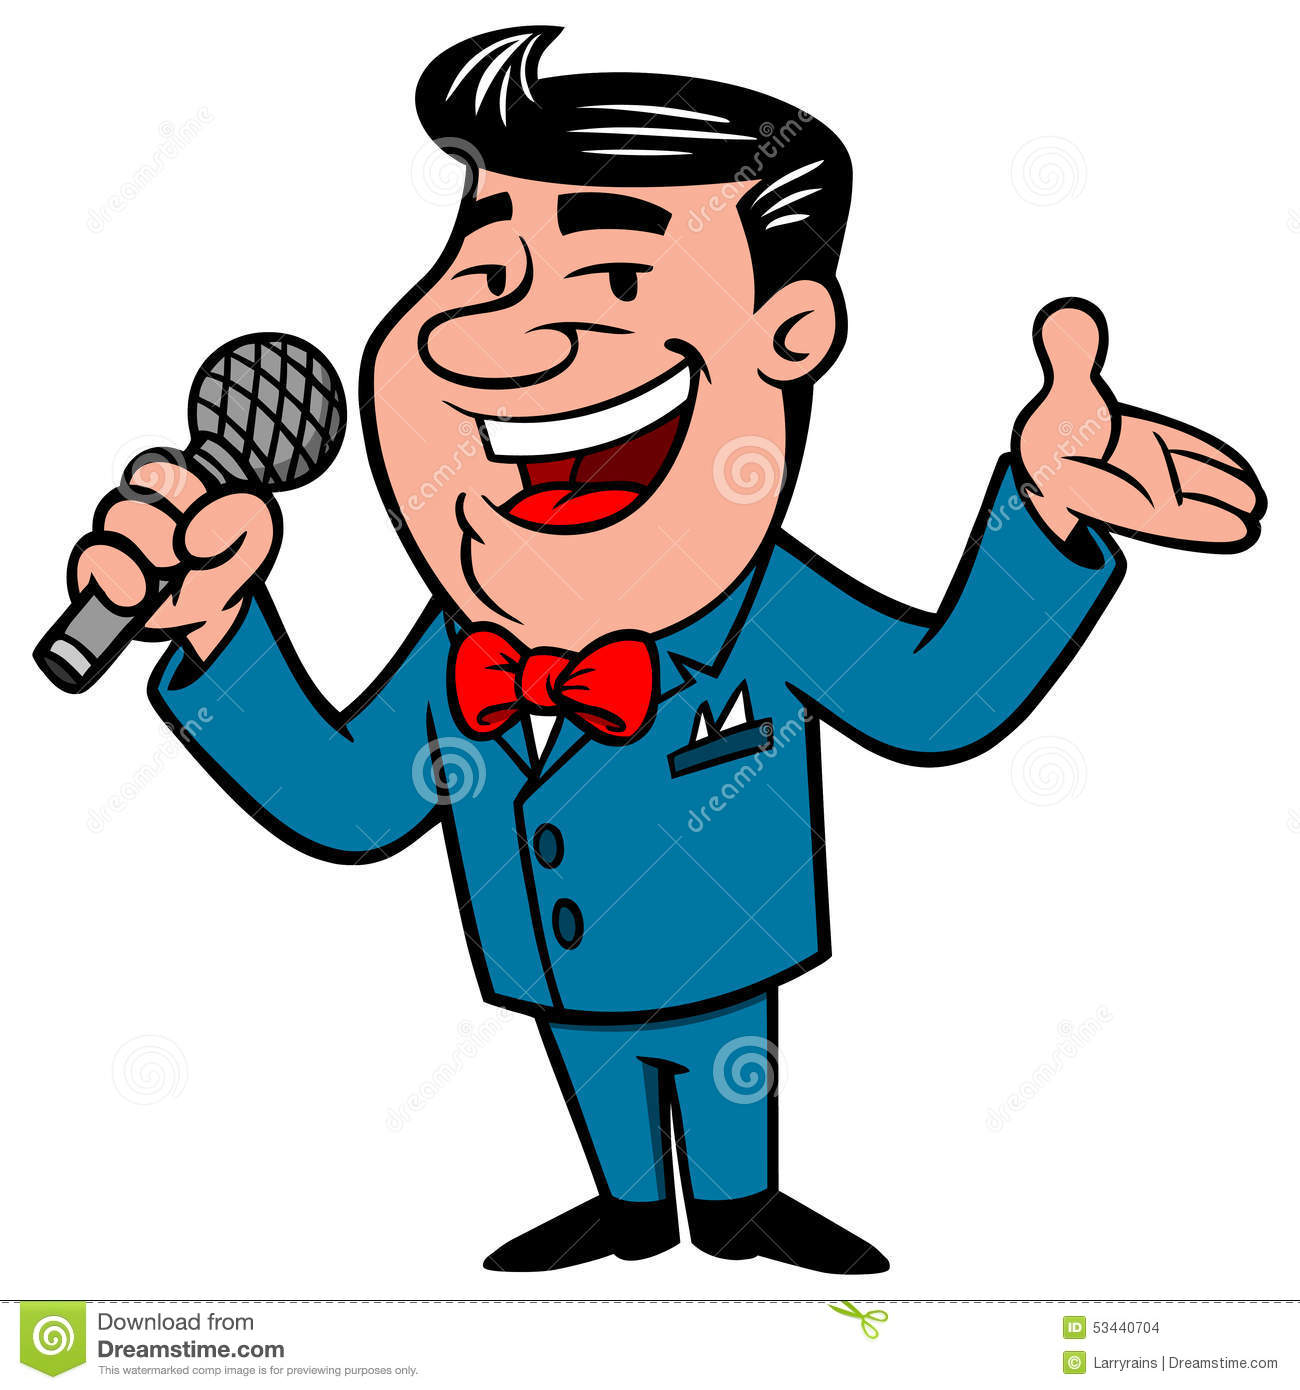 Announcer Clipart.